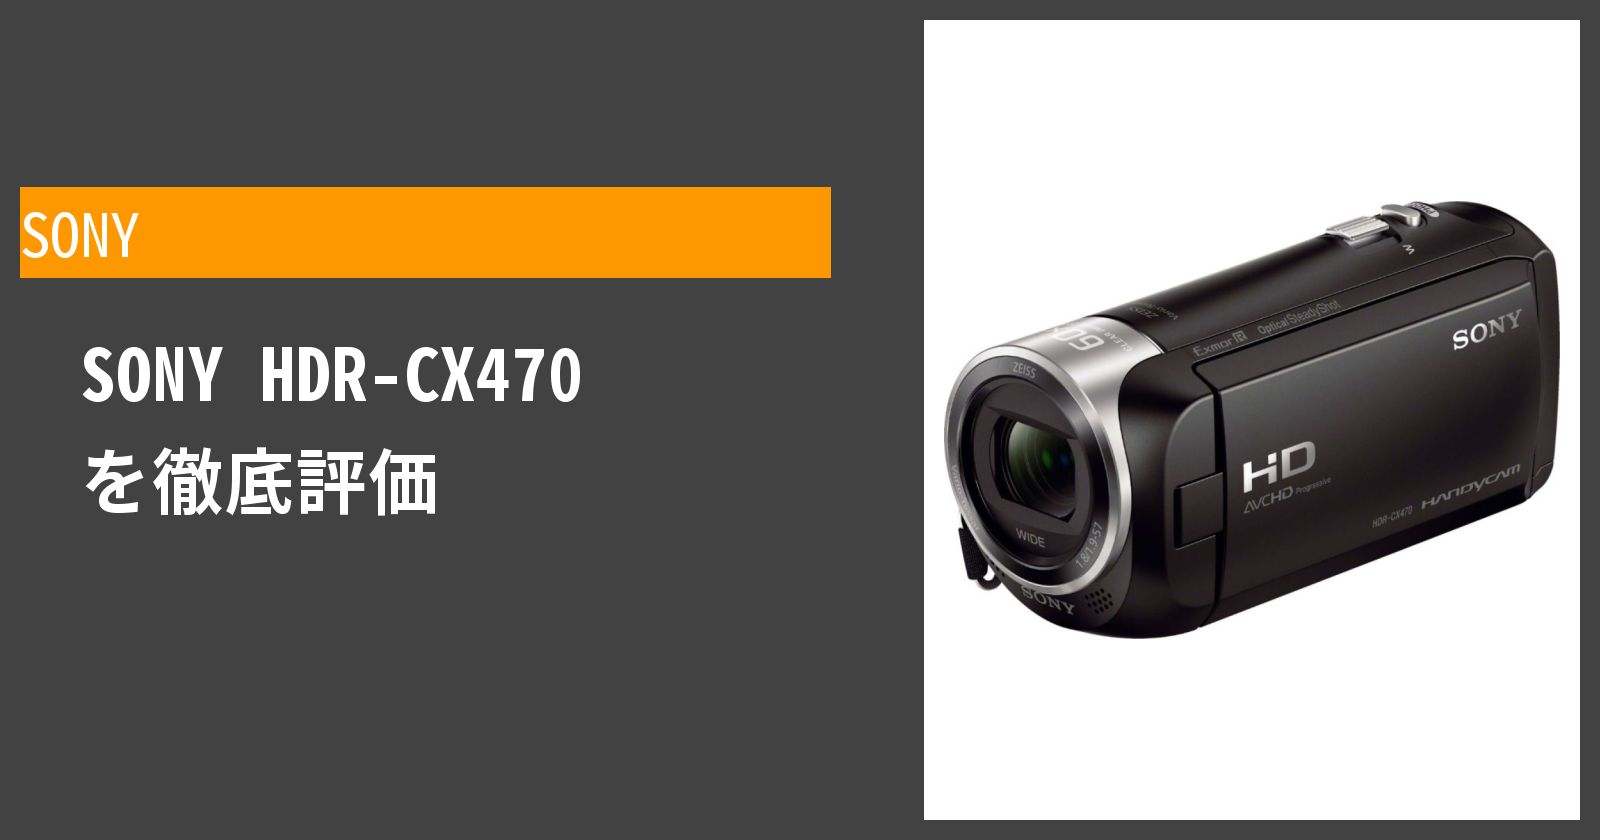 HDR-CX470を徹底評価